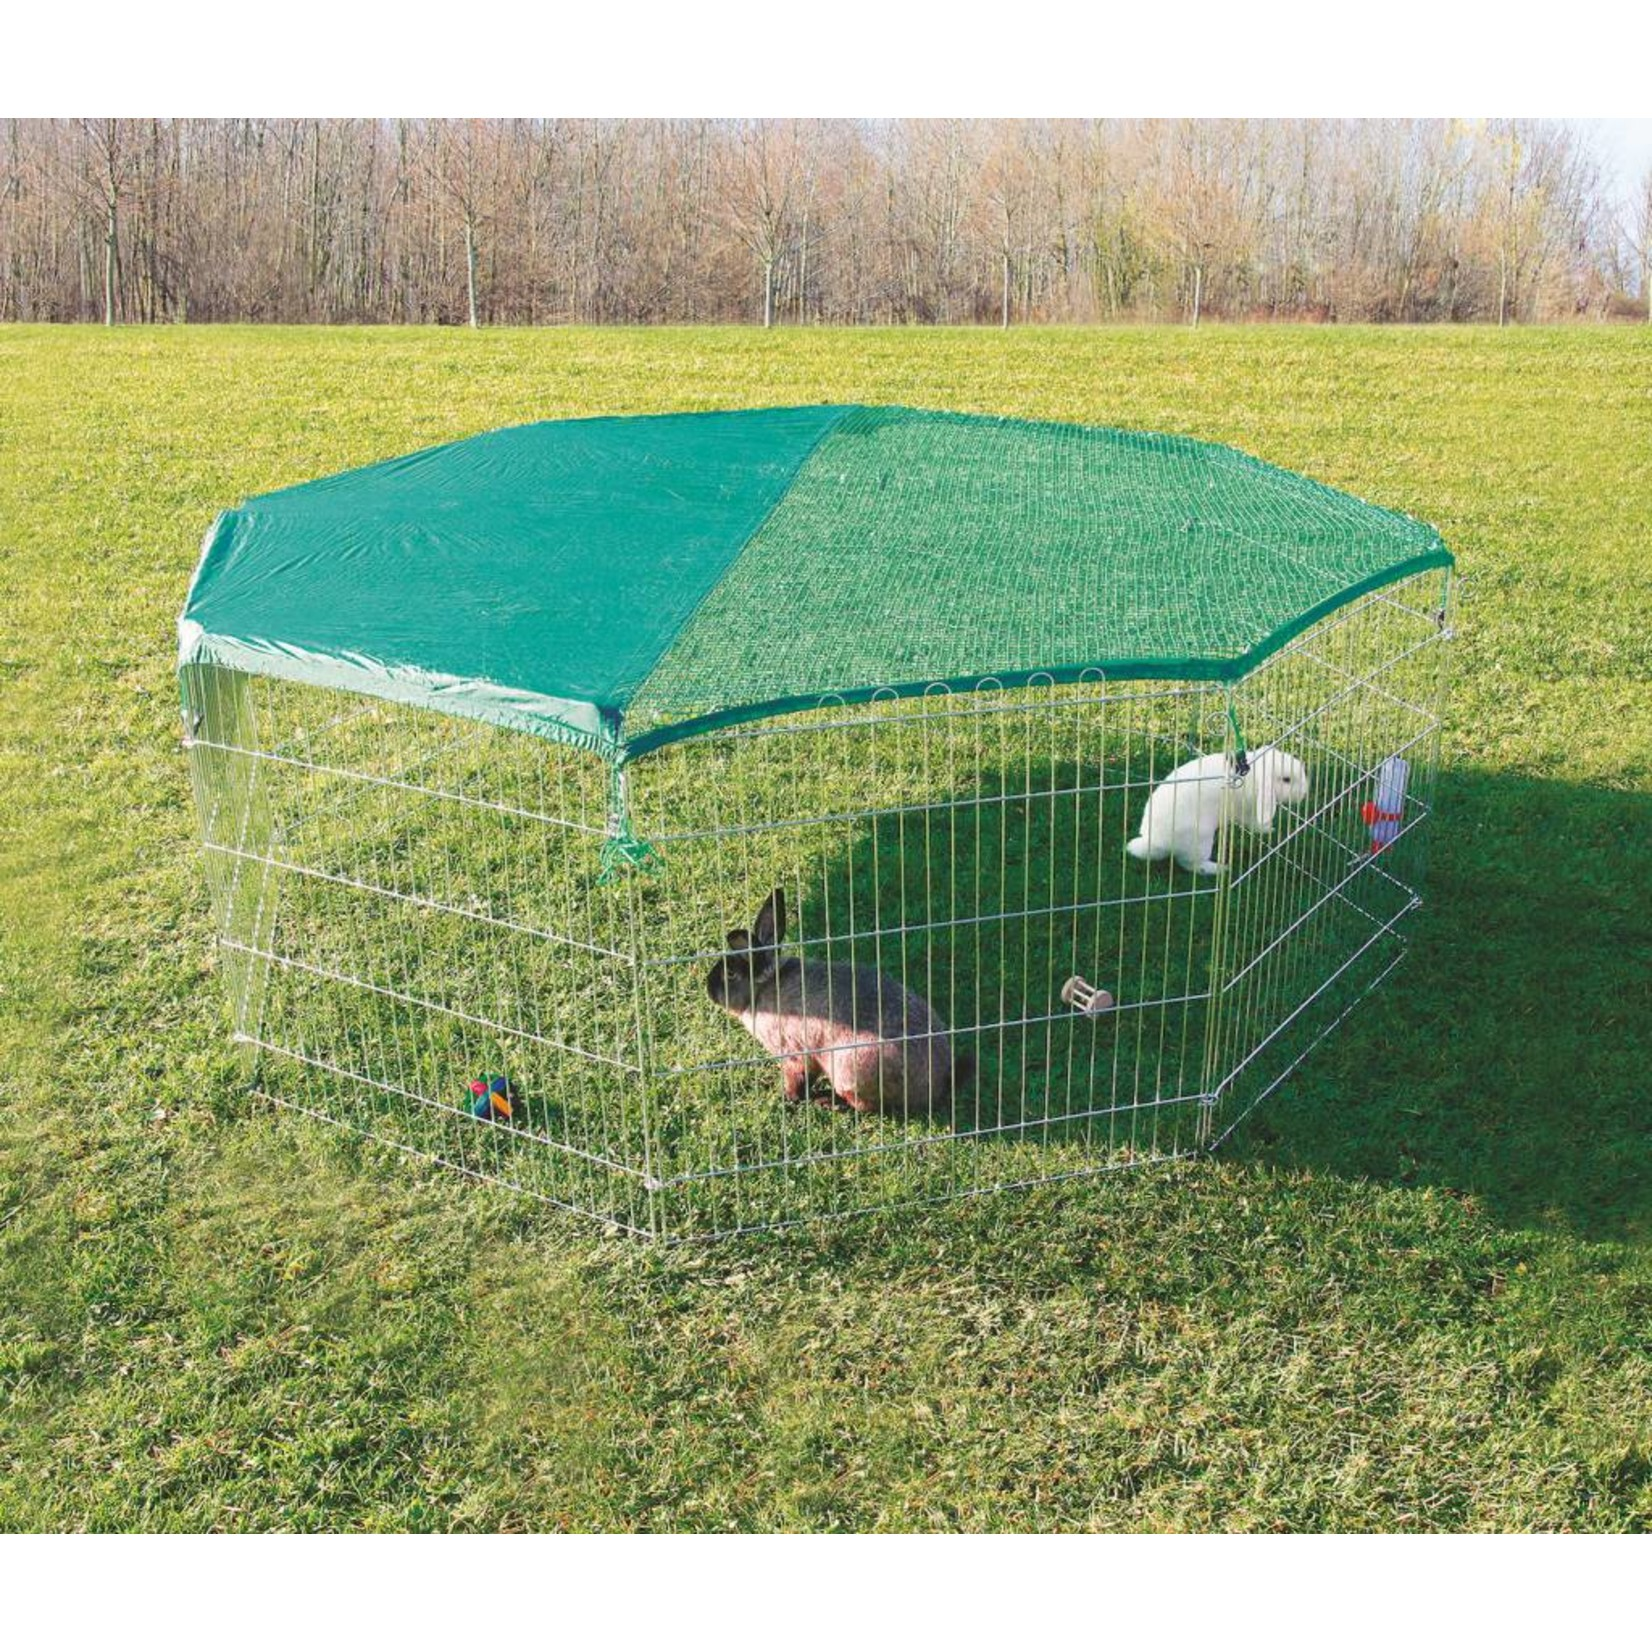 Trixie 8 Panel Outdoor Run with Protective Net, 8 panels of 80 x 75cm